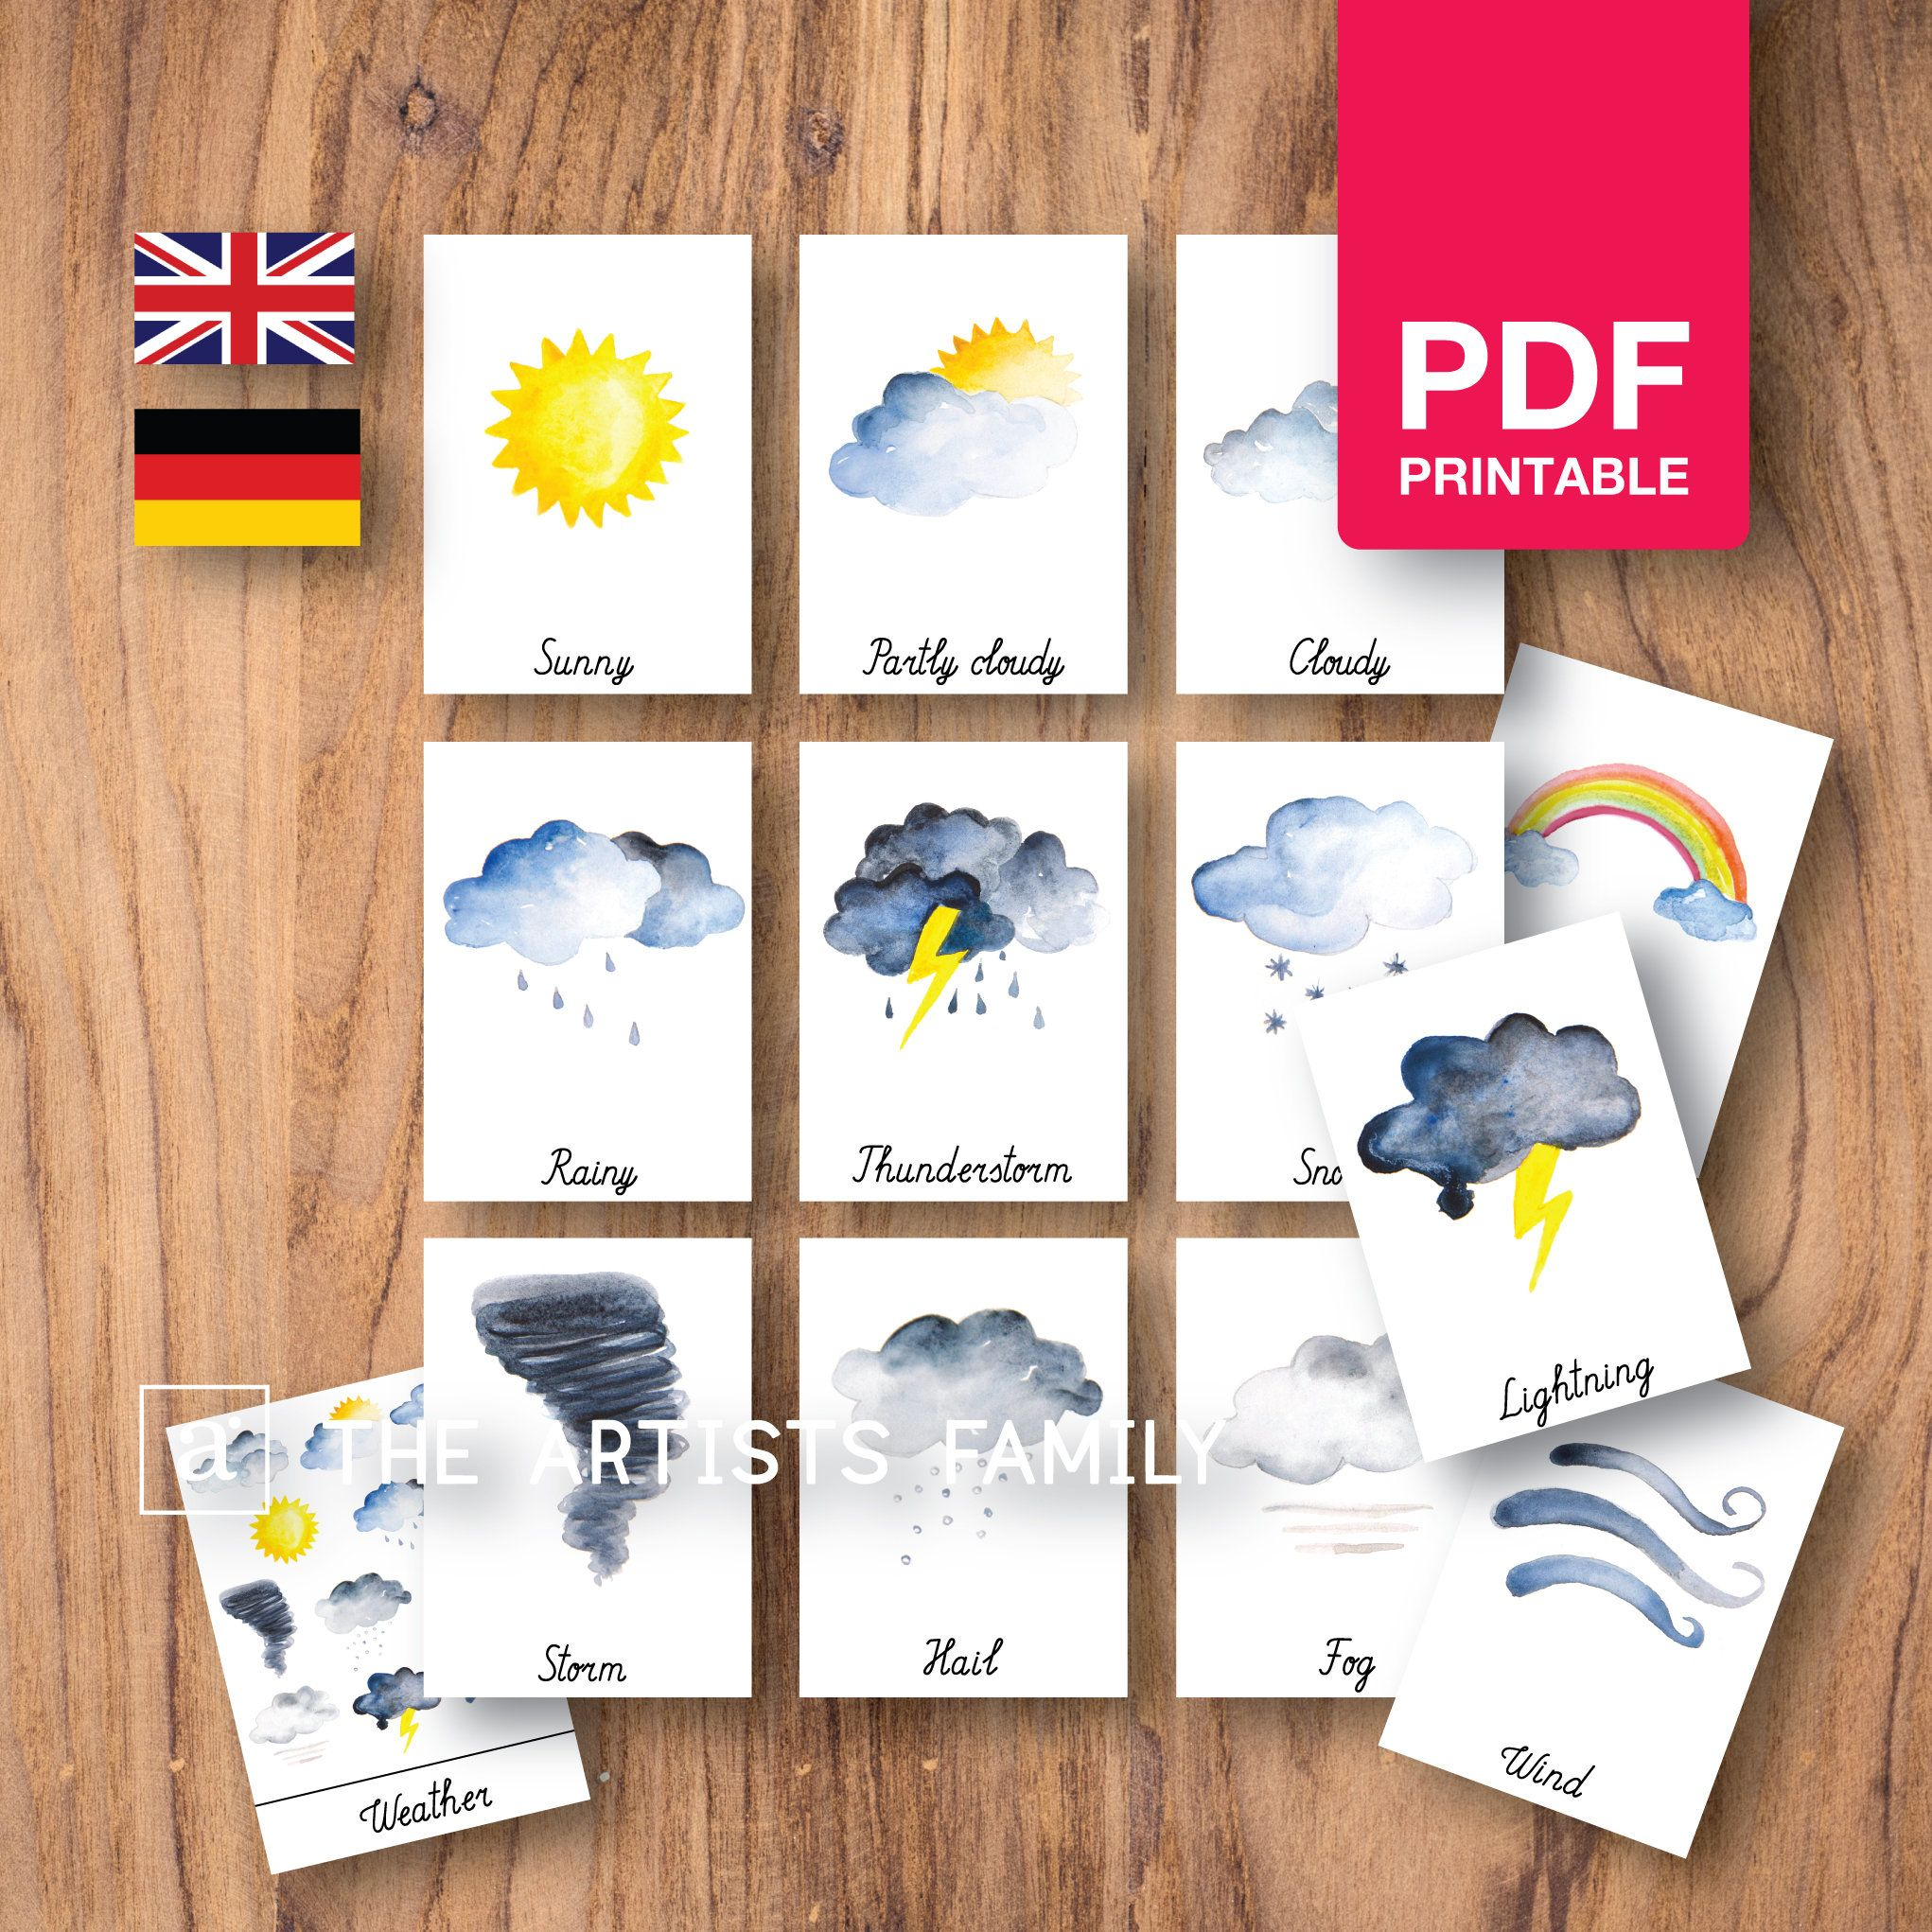 Weather 12 Cards Watercolor Montessori Nomenclature Flash 3 Part Educational Material Homeschooling Printable Learning German Spanish French Alphabet Cards Montessori Educational Materials